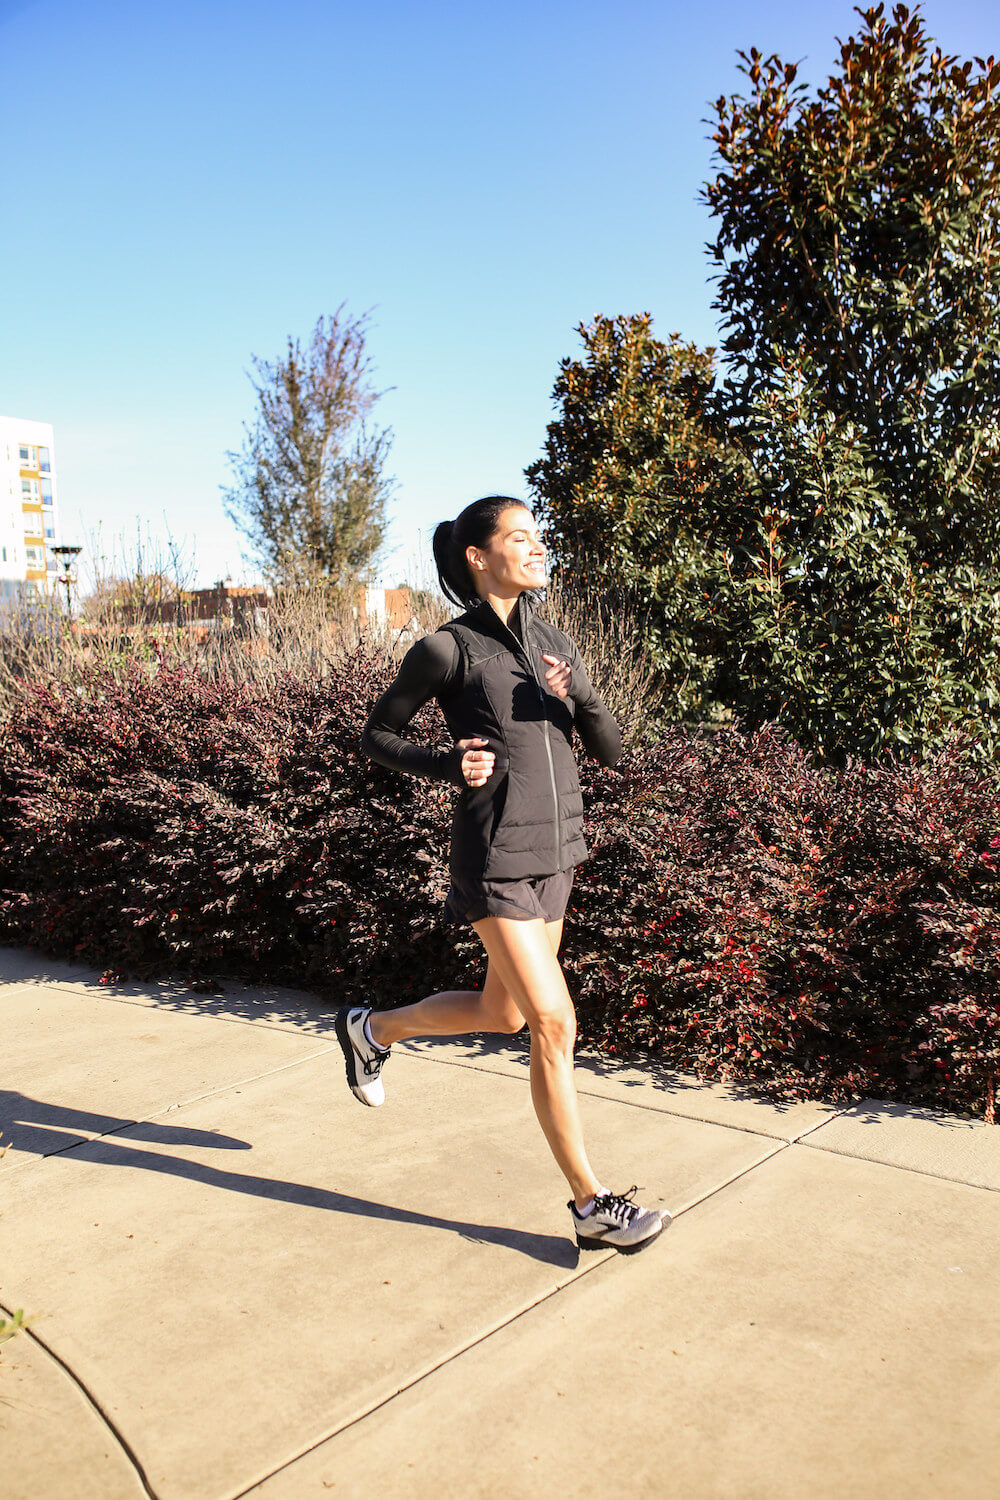 balancing running with strength training and yoga